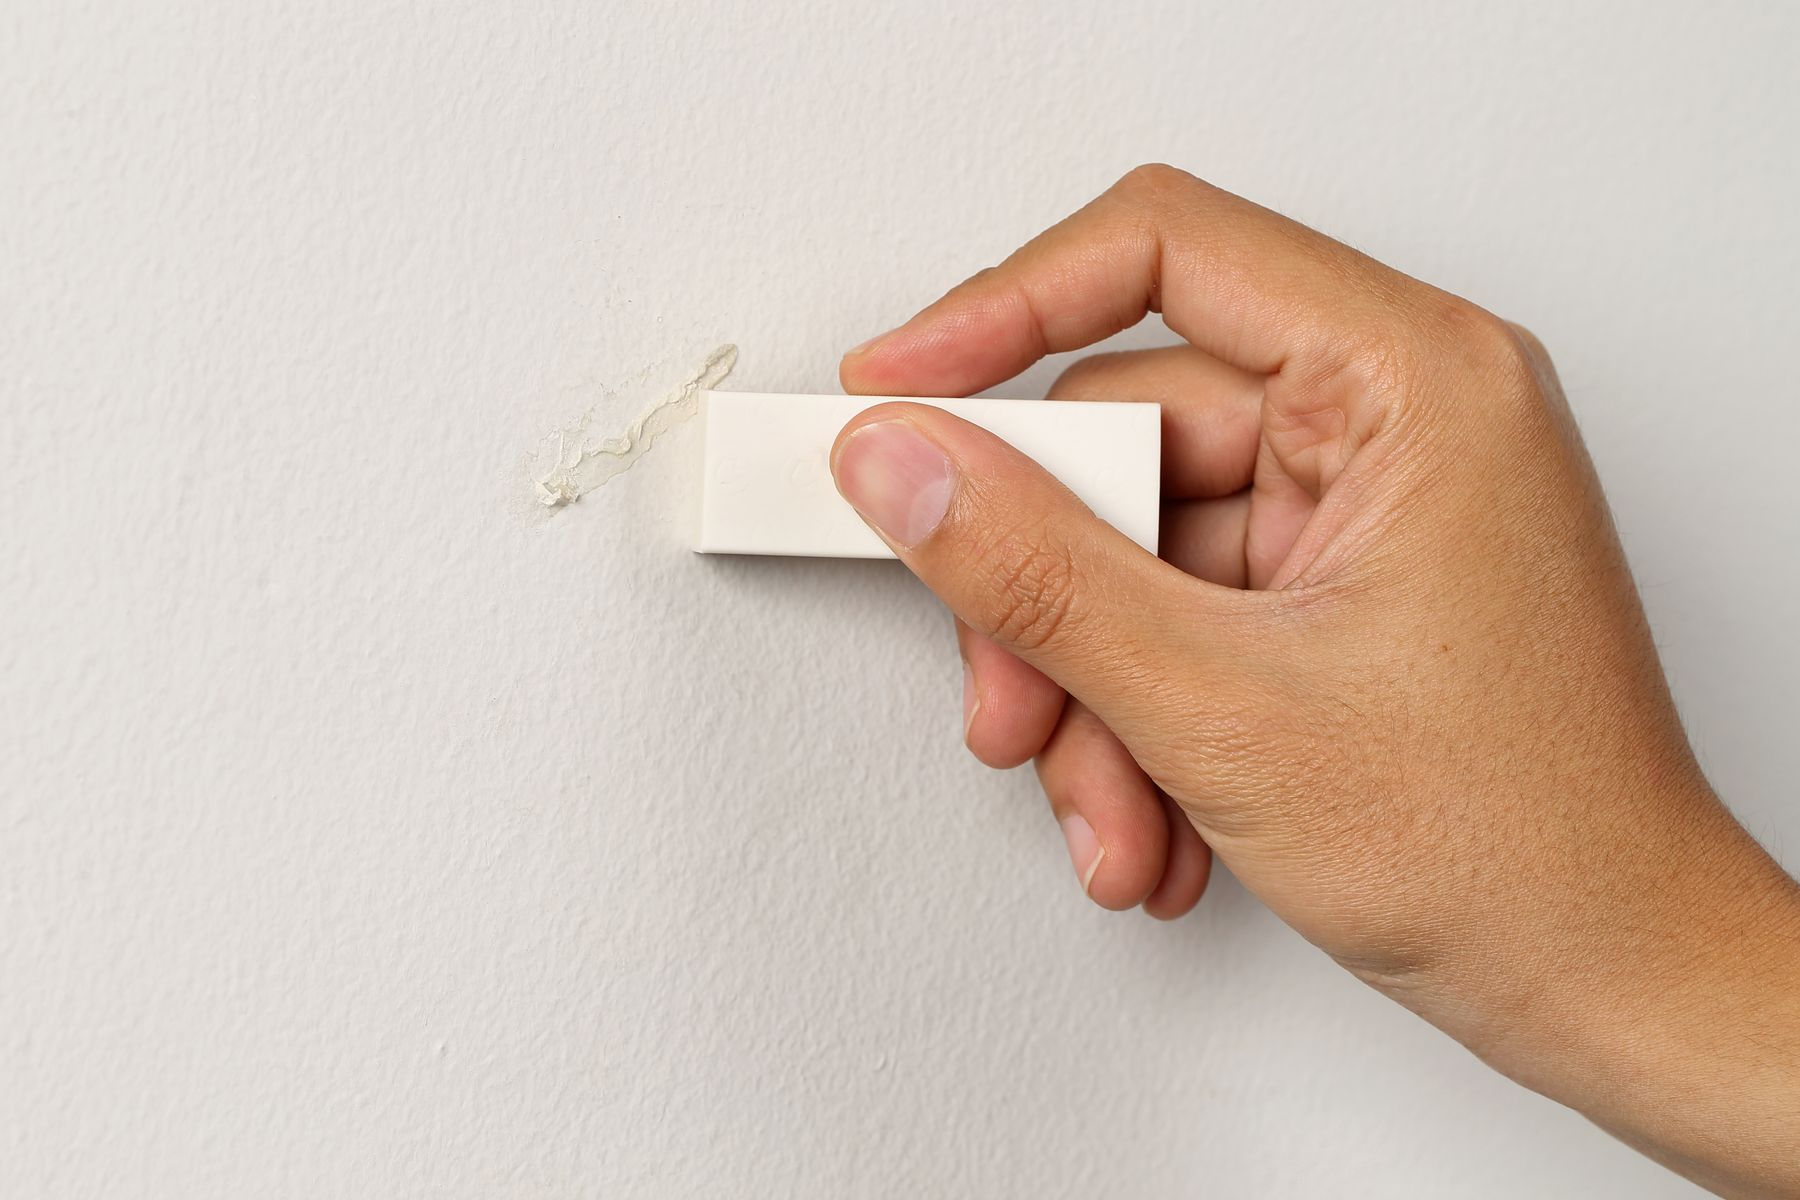 Step 2: Wiping sticker residue from a wall with an eraser